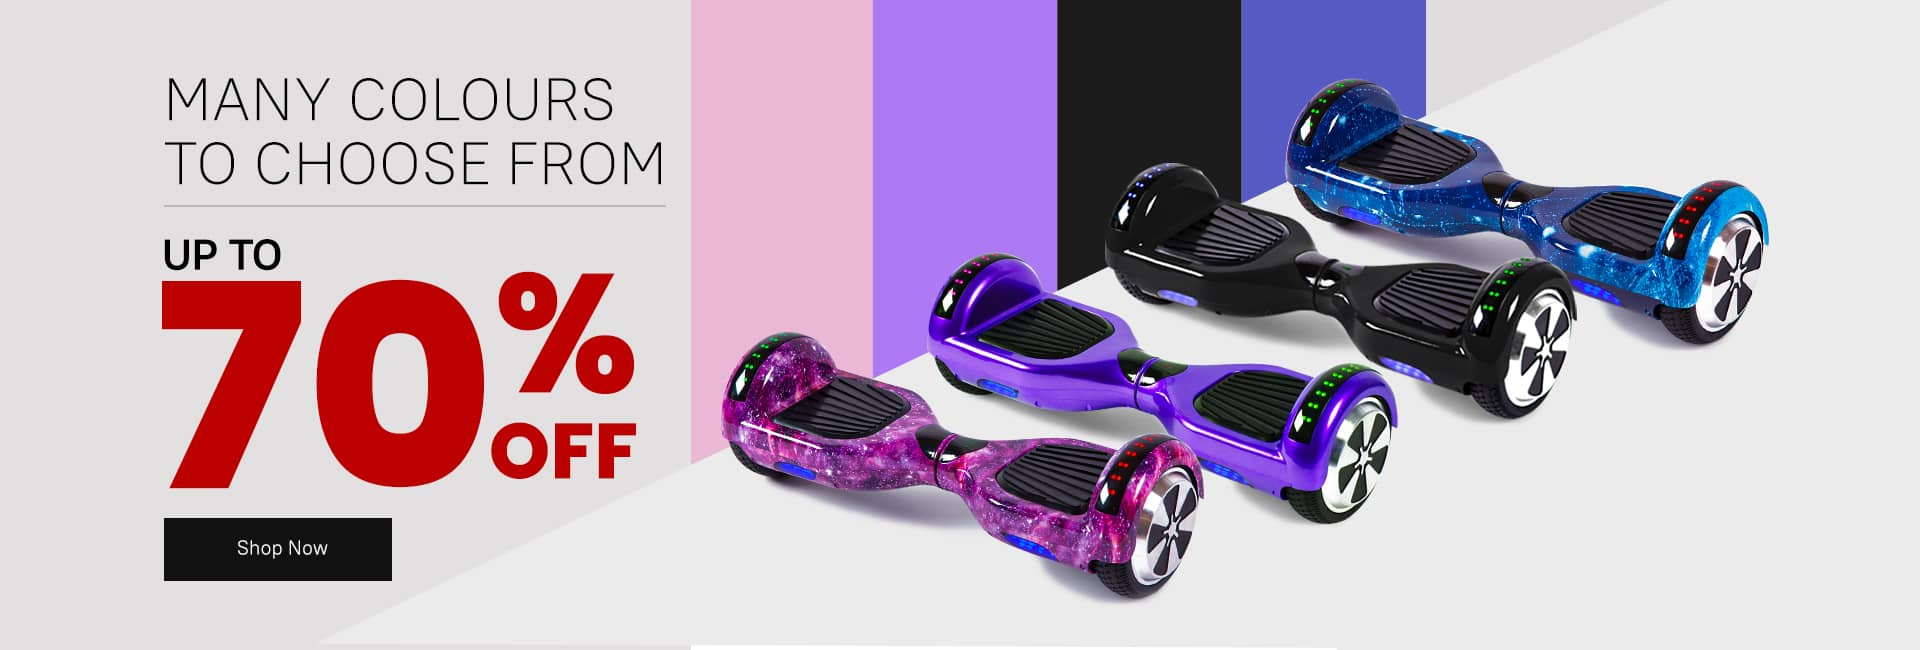 Best Hoverboard colors and designs 70% off